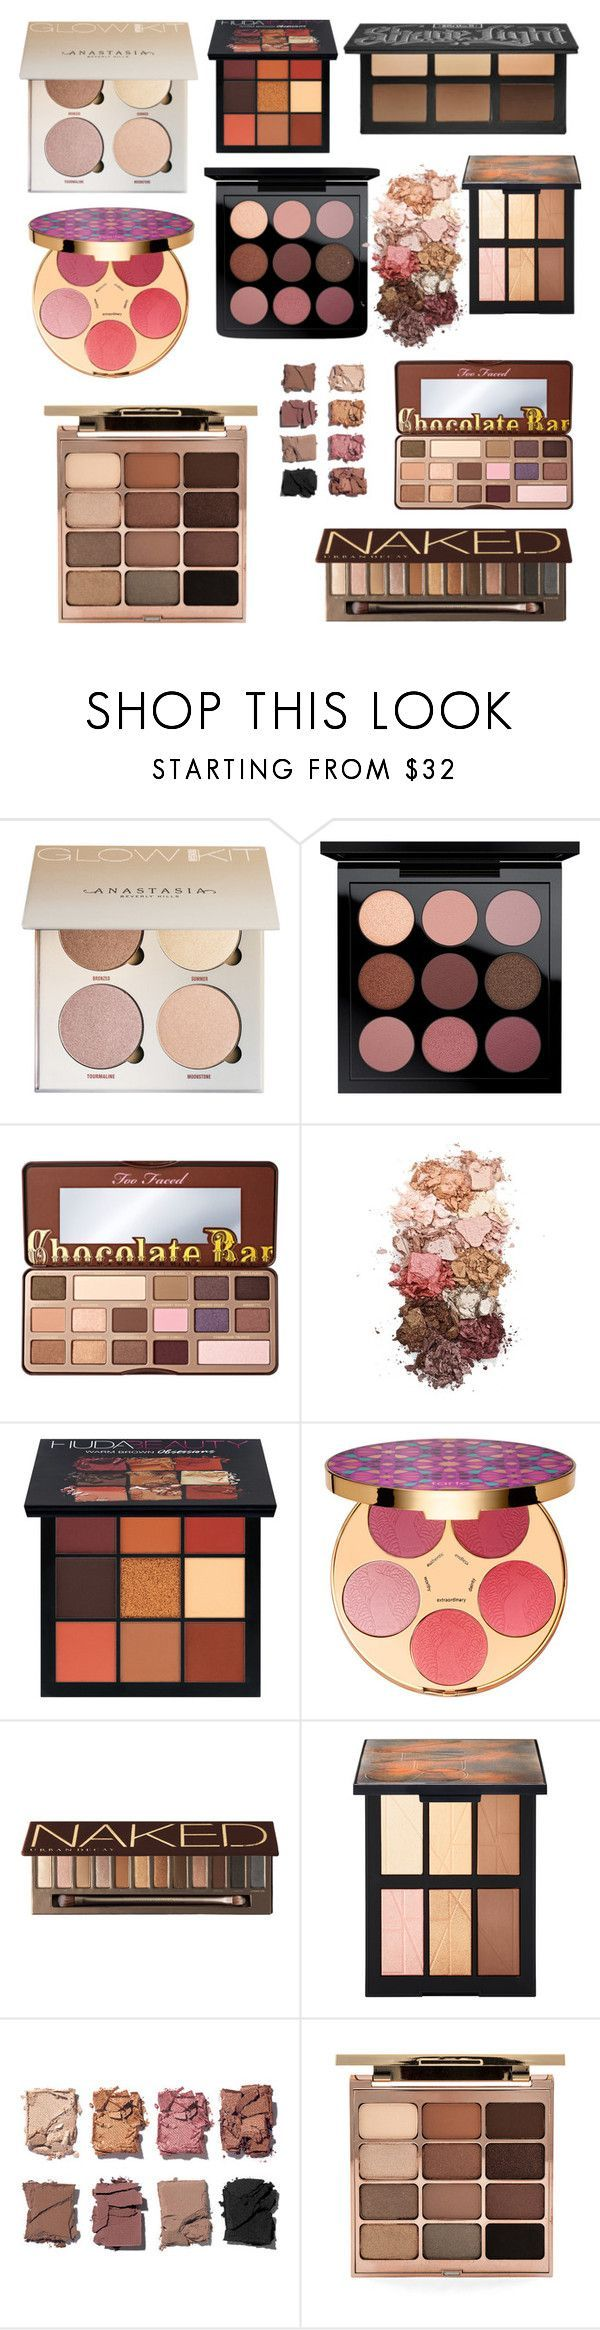 Must Have Palettes Part 1 by rosegoldpearls on Polyvore featuring beauty products by Stila, MAC Cosmetics, tarte, Urban Decay, NARS Cosmetics, Huda Beauty, Sigma and Illamasqua